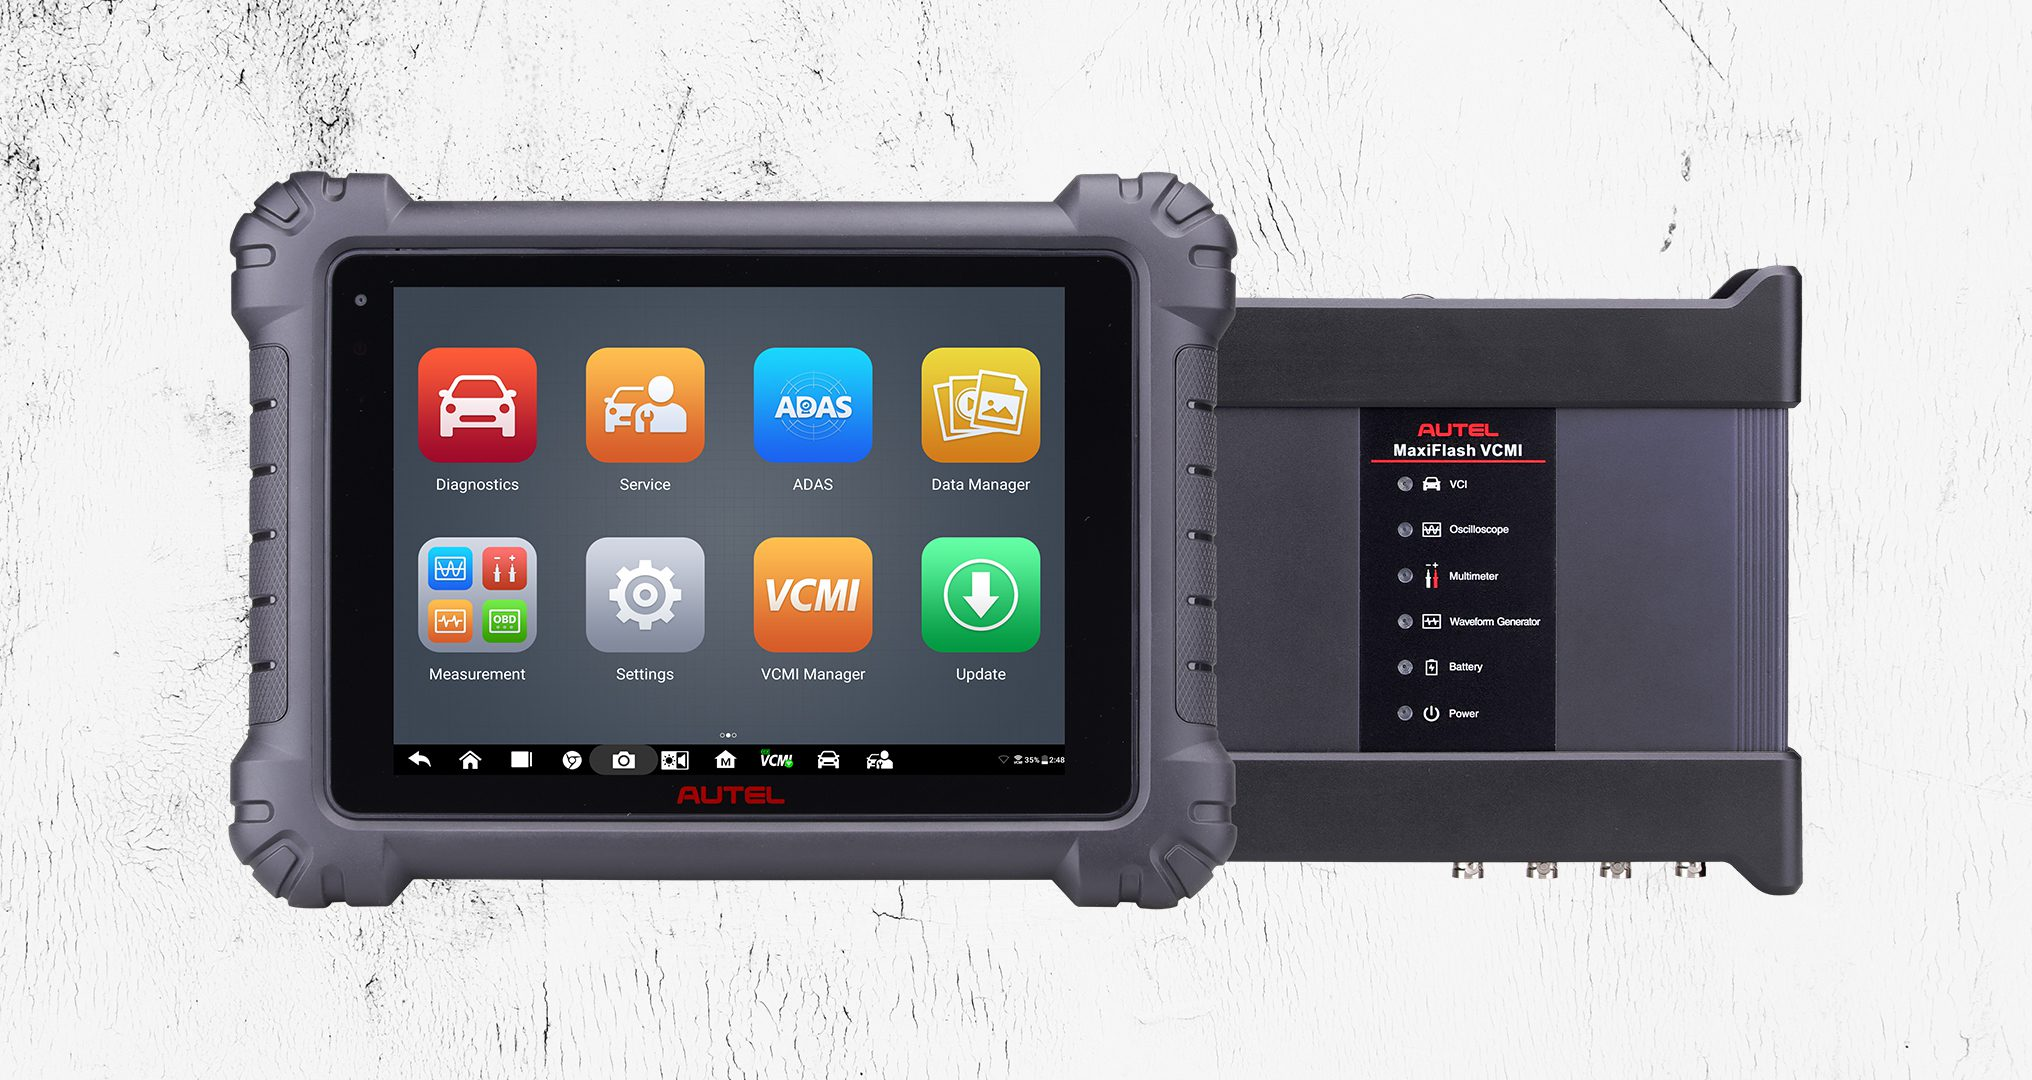 autel tablet with vcmi manager